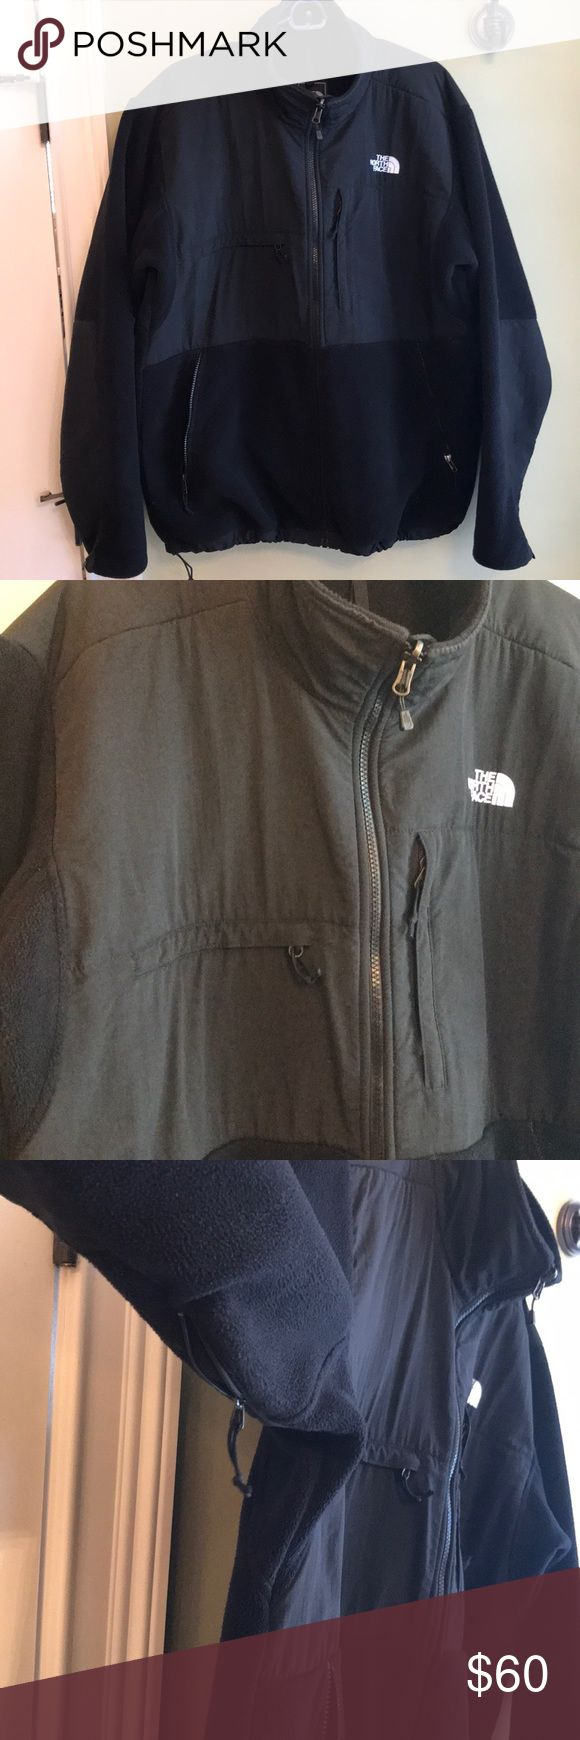 Black North Face coat Breathable The North Face Coat. Draw strings on waist for tighter fight, 4 big zipper secured pockets, water resistant shoulders and under arm zippers for heat release. Polartec recycled collaboration. Jackets & Coats Performance Jackets